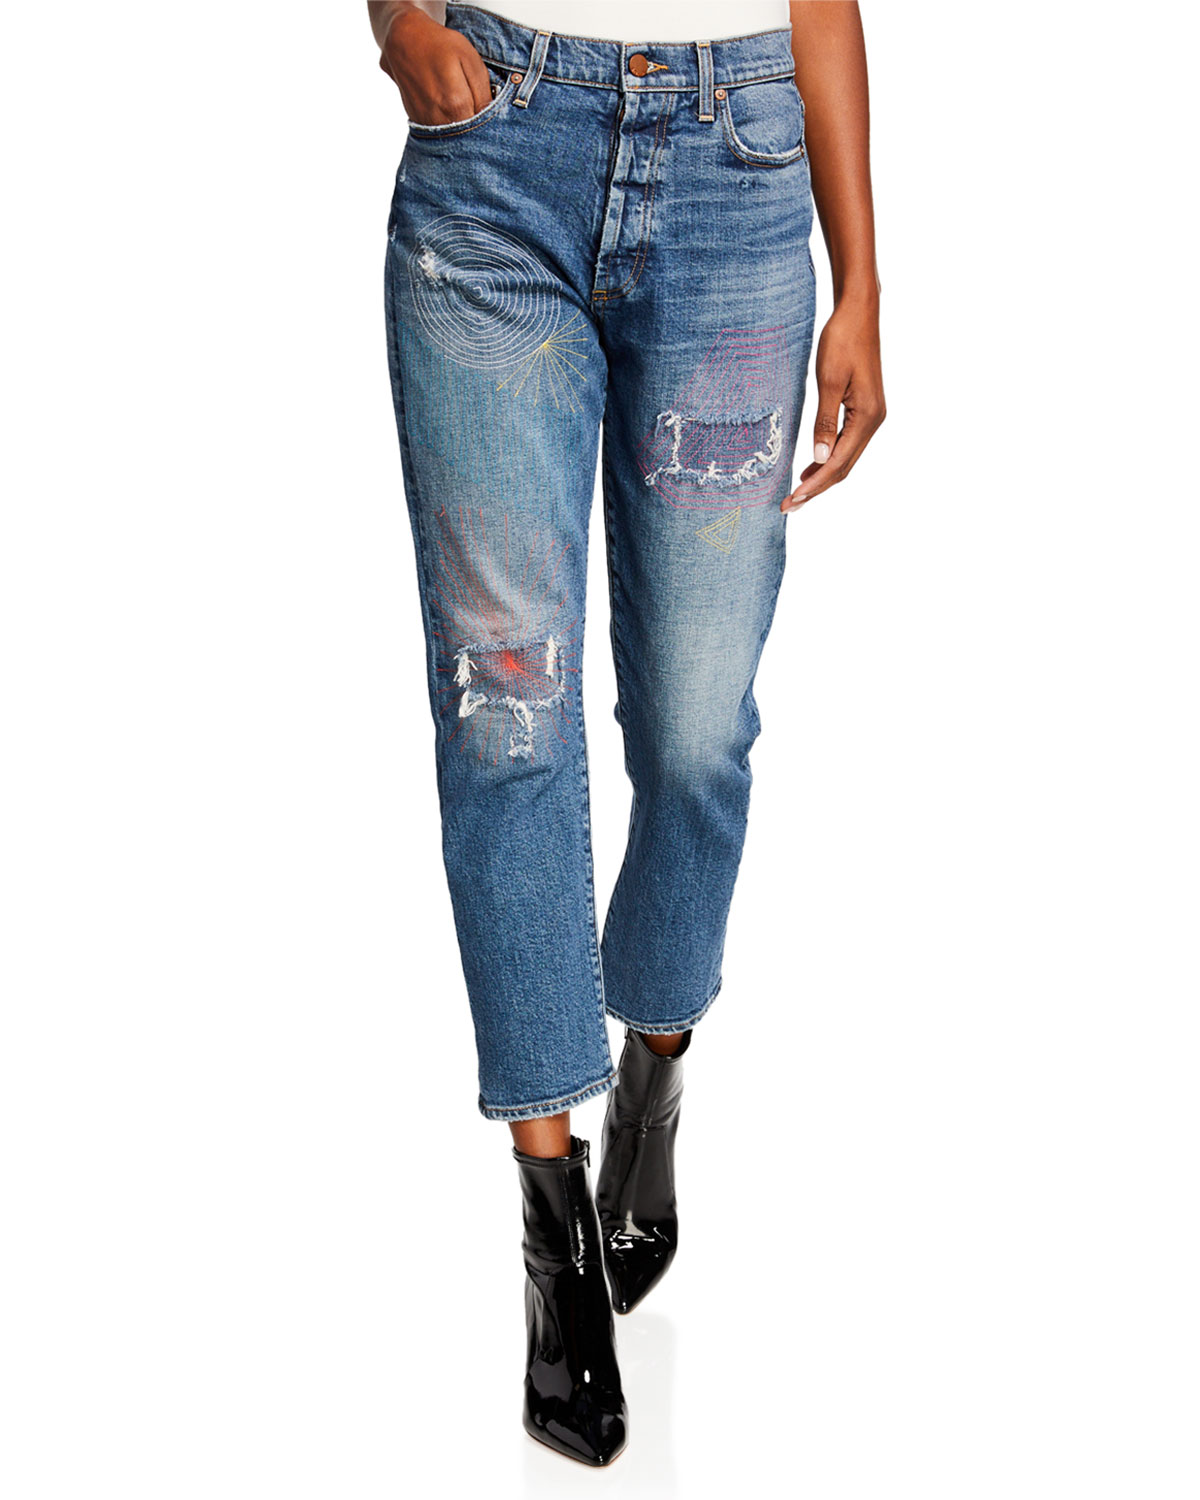 ALICE + OLIVIA JEANS Amazing High-Rise Slim Girlfriend Jeans in Saint And Sinner